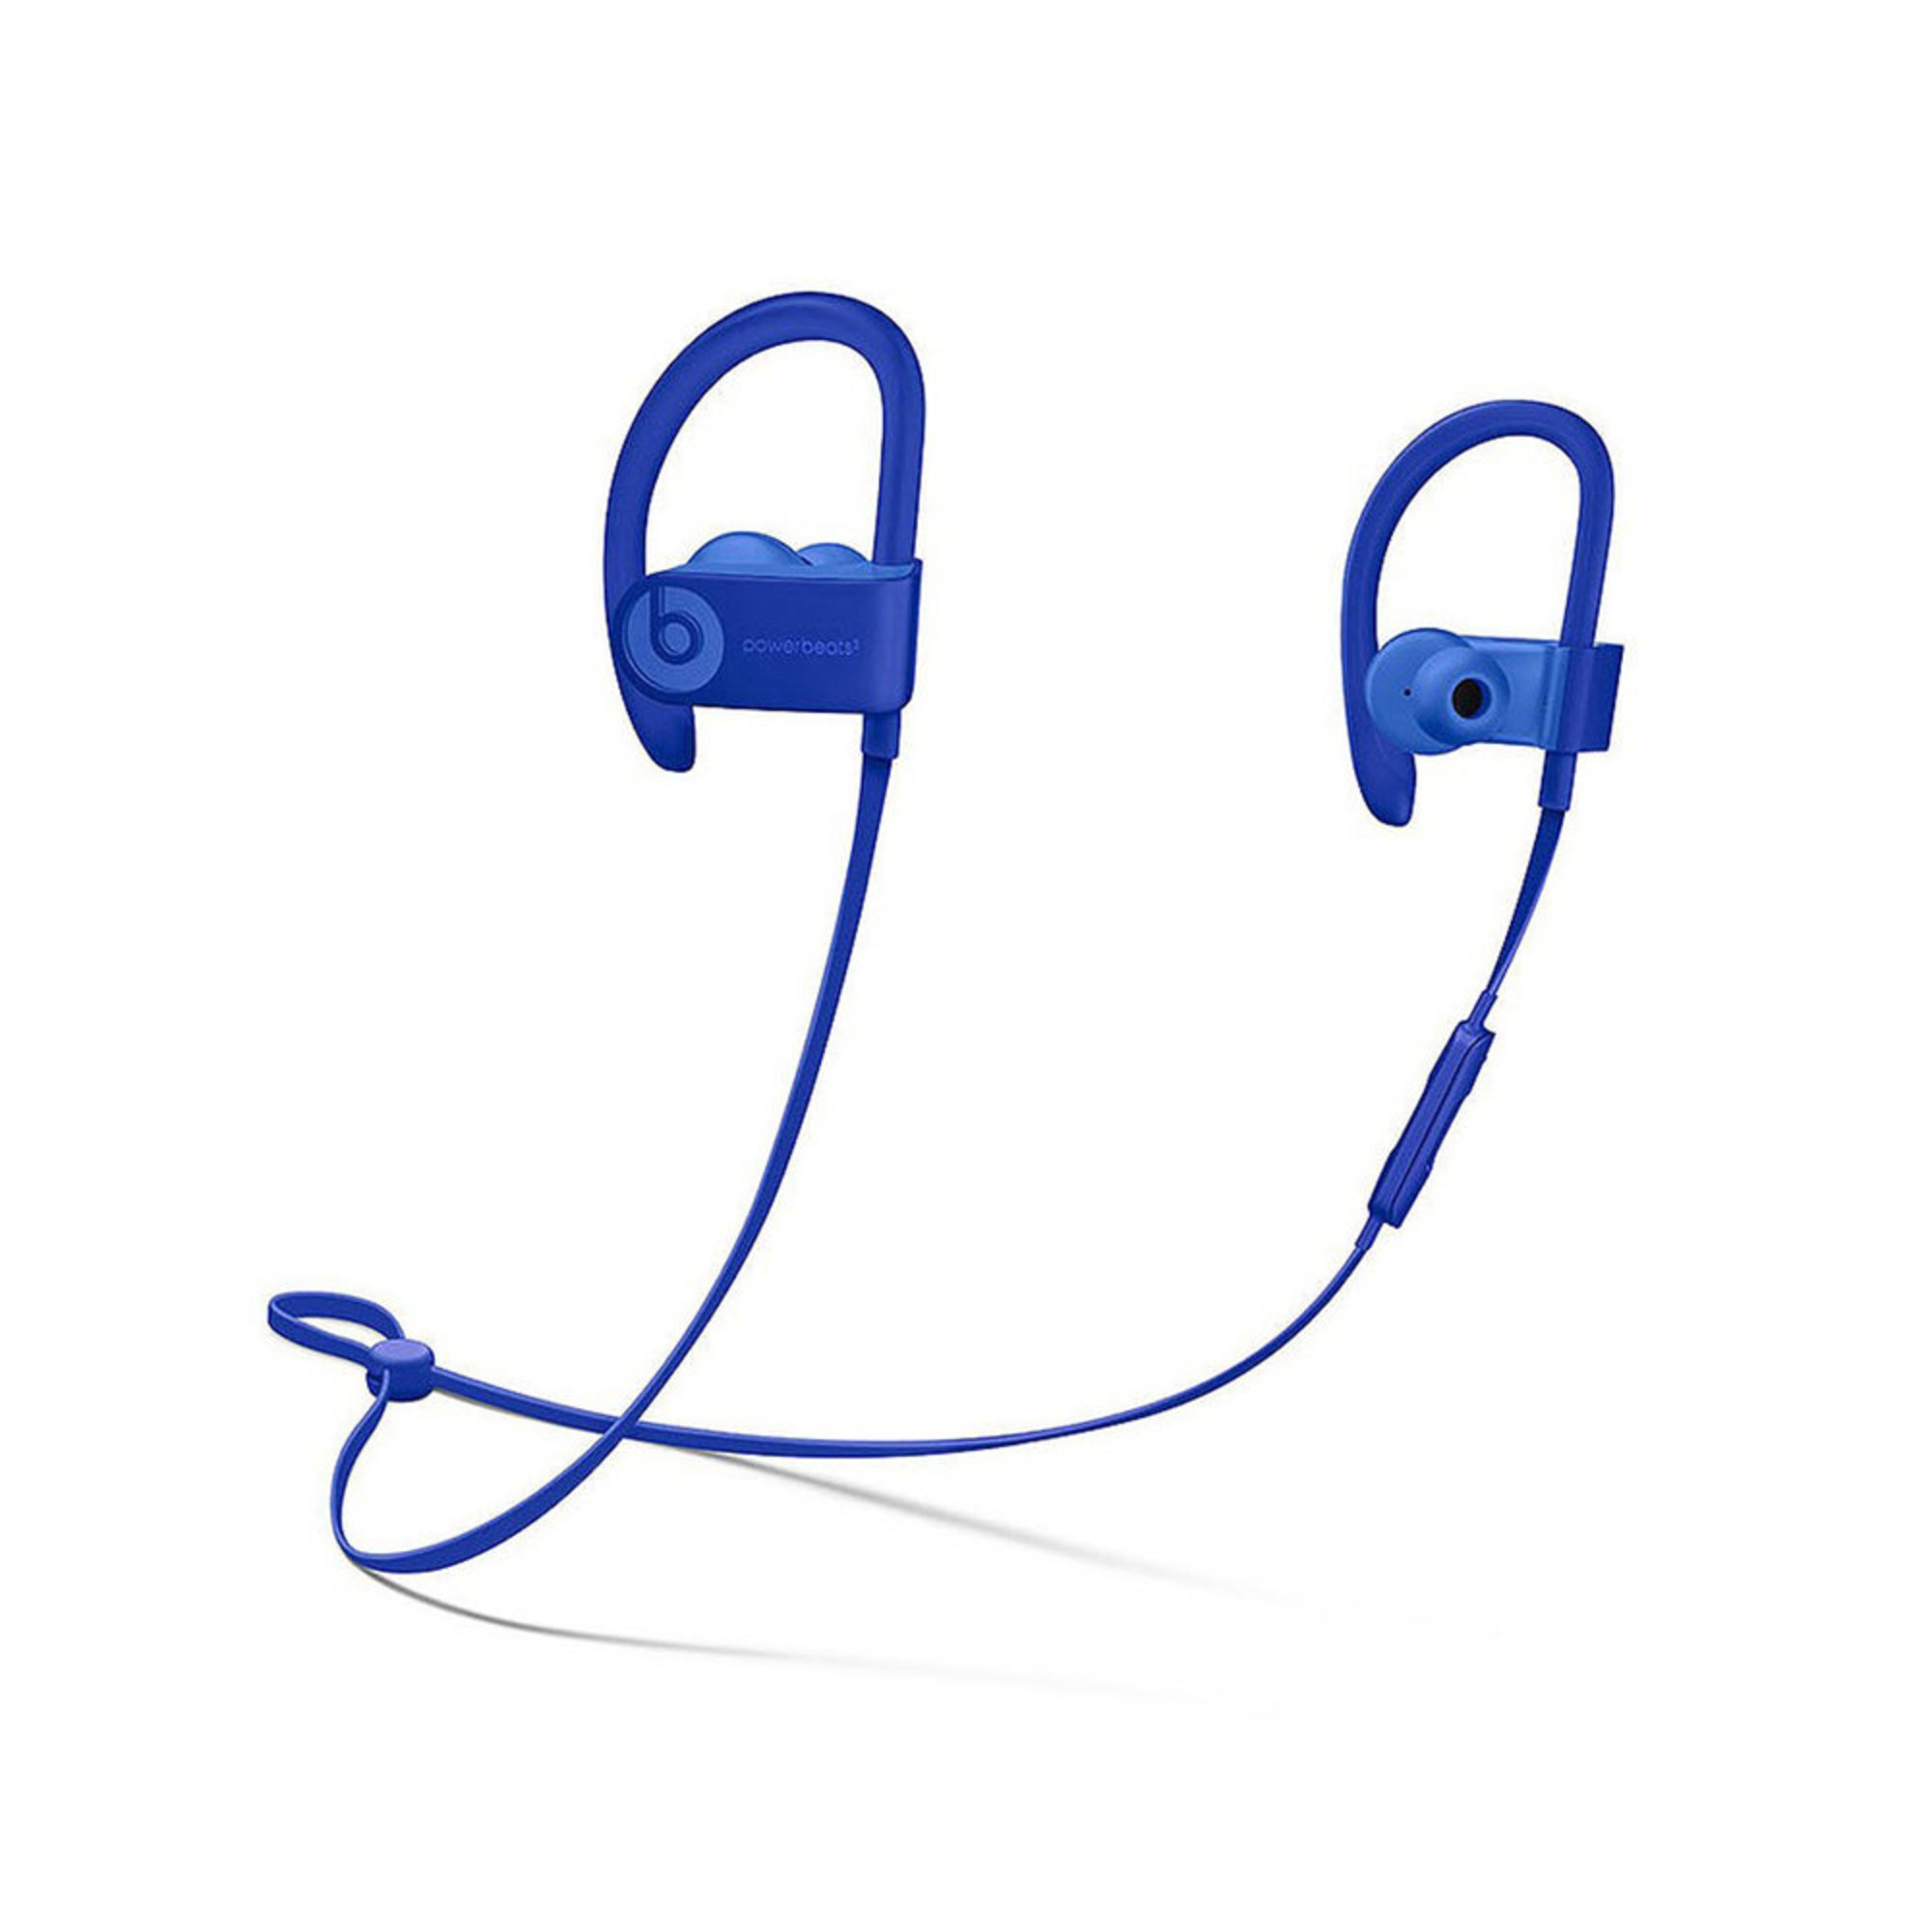 a8df027e3cd Beats by Dr. Dre. Beats PowerBeats3 Wireless Earphones - Neighborhood  Collection, Break Blue